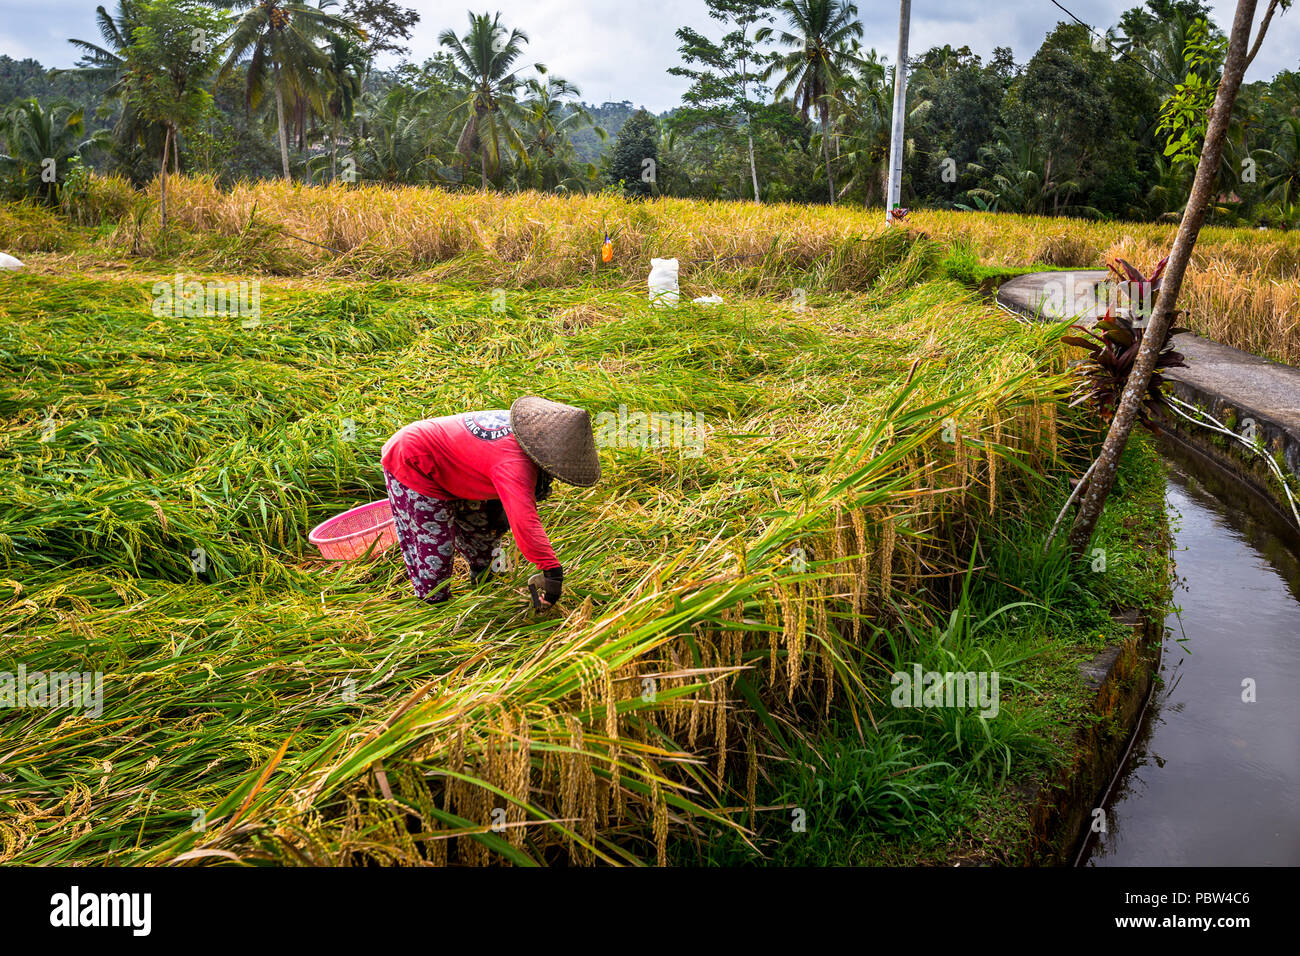 Rice Field Worker next to irrigation canal in Bali, Indonesia. - Stock Image